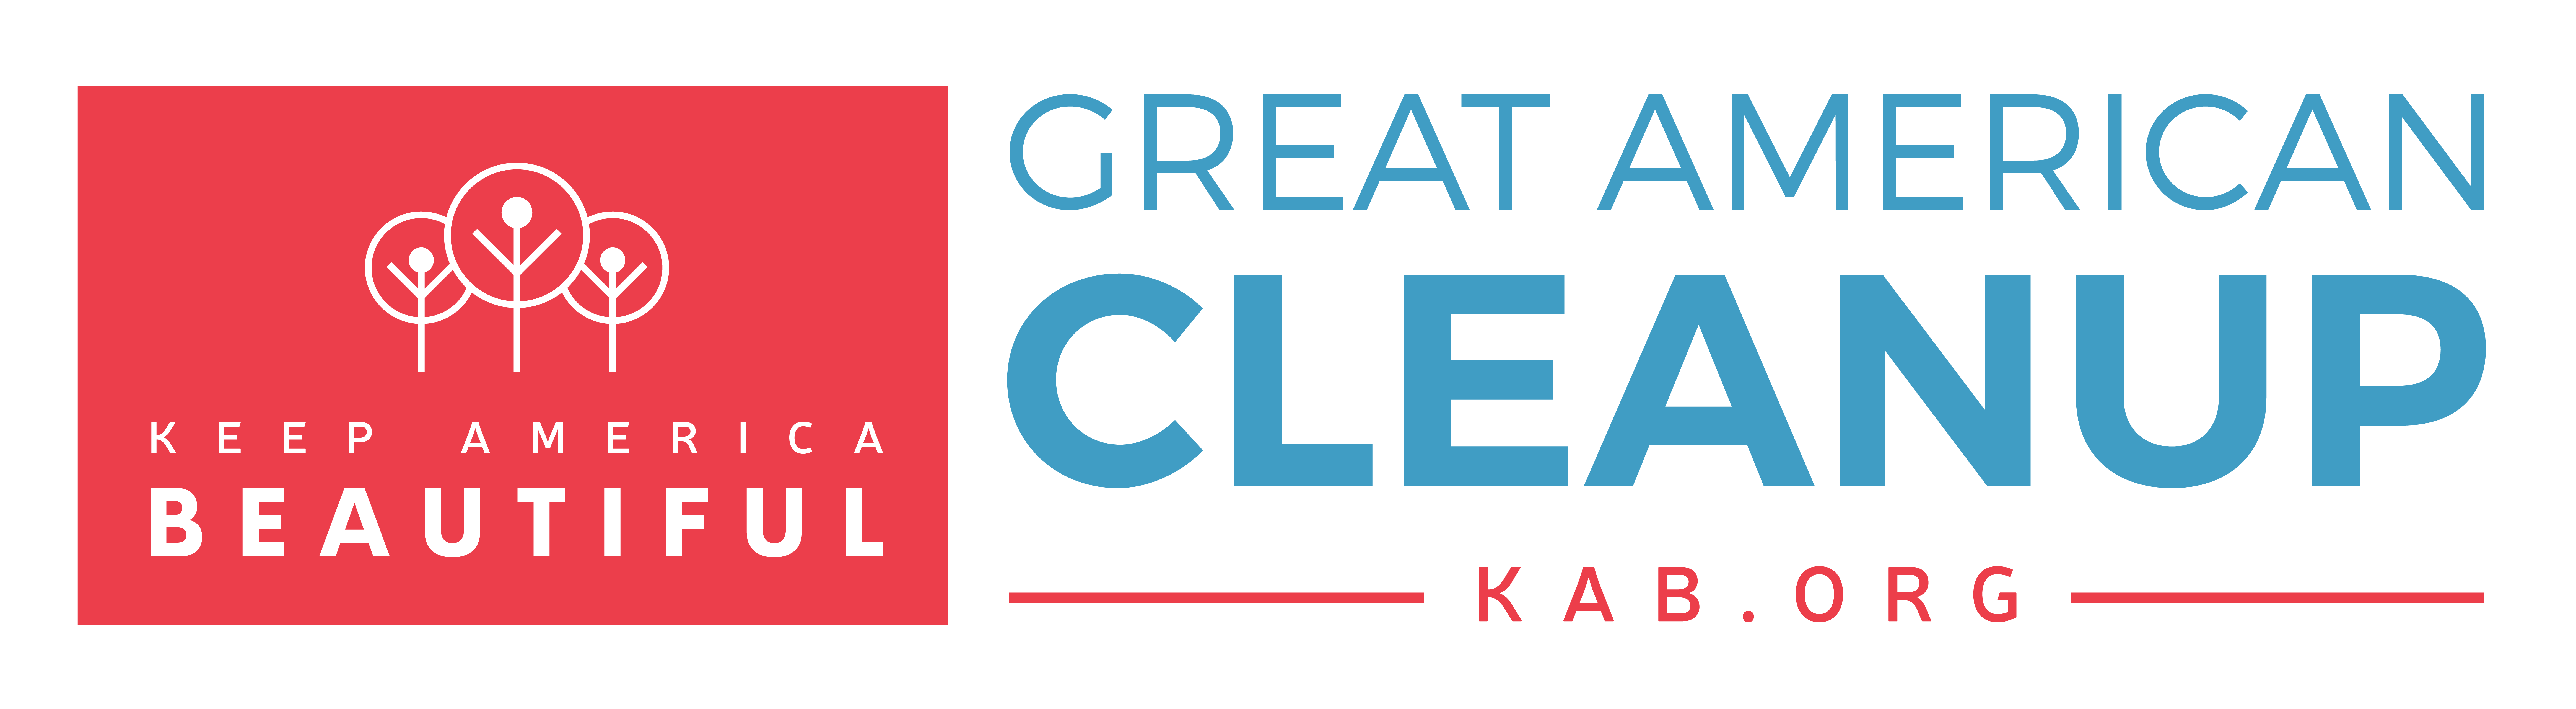 Great american country logo png. Cleanup keep america beautiful